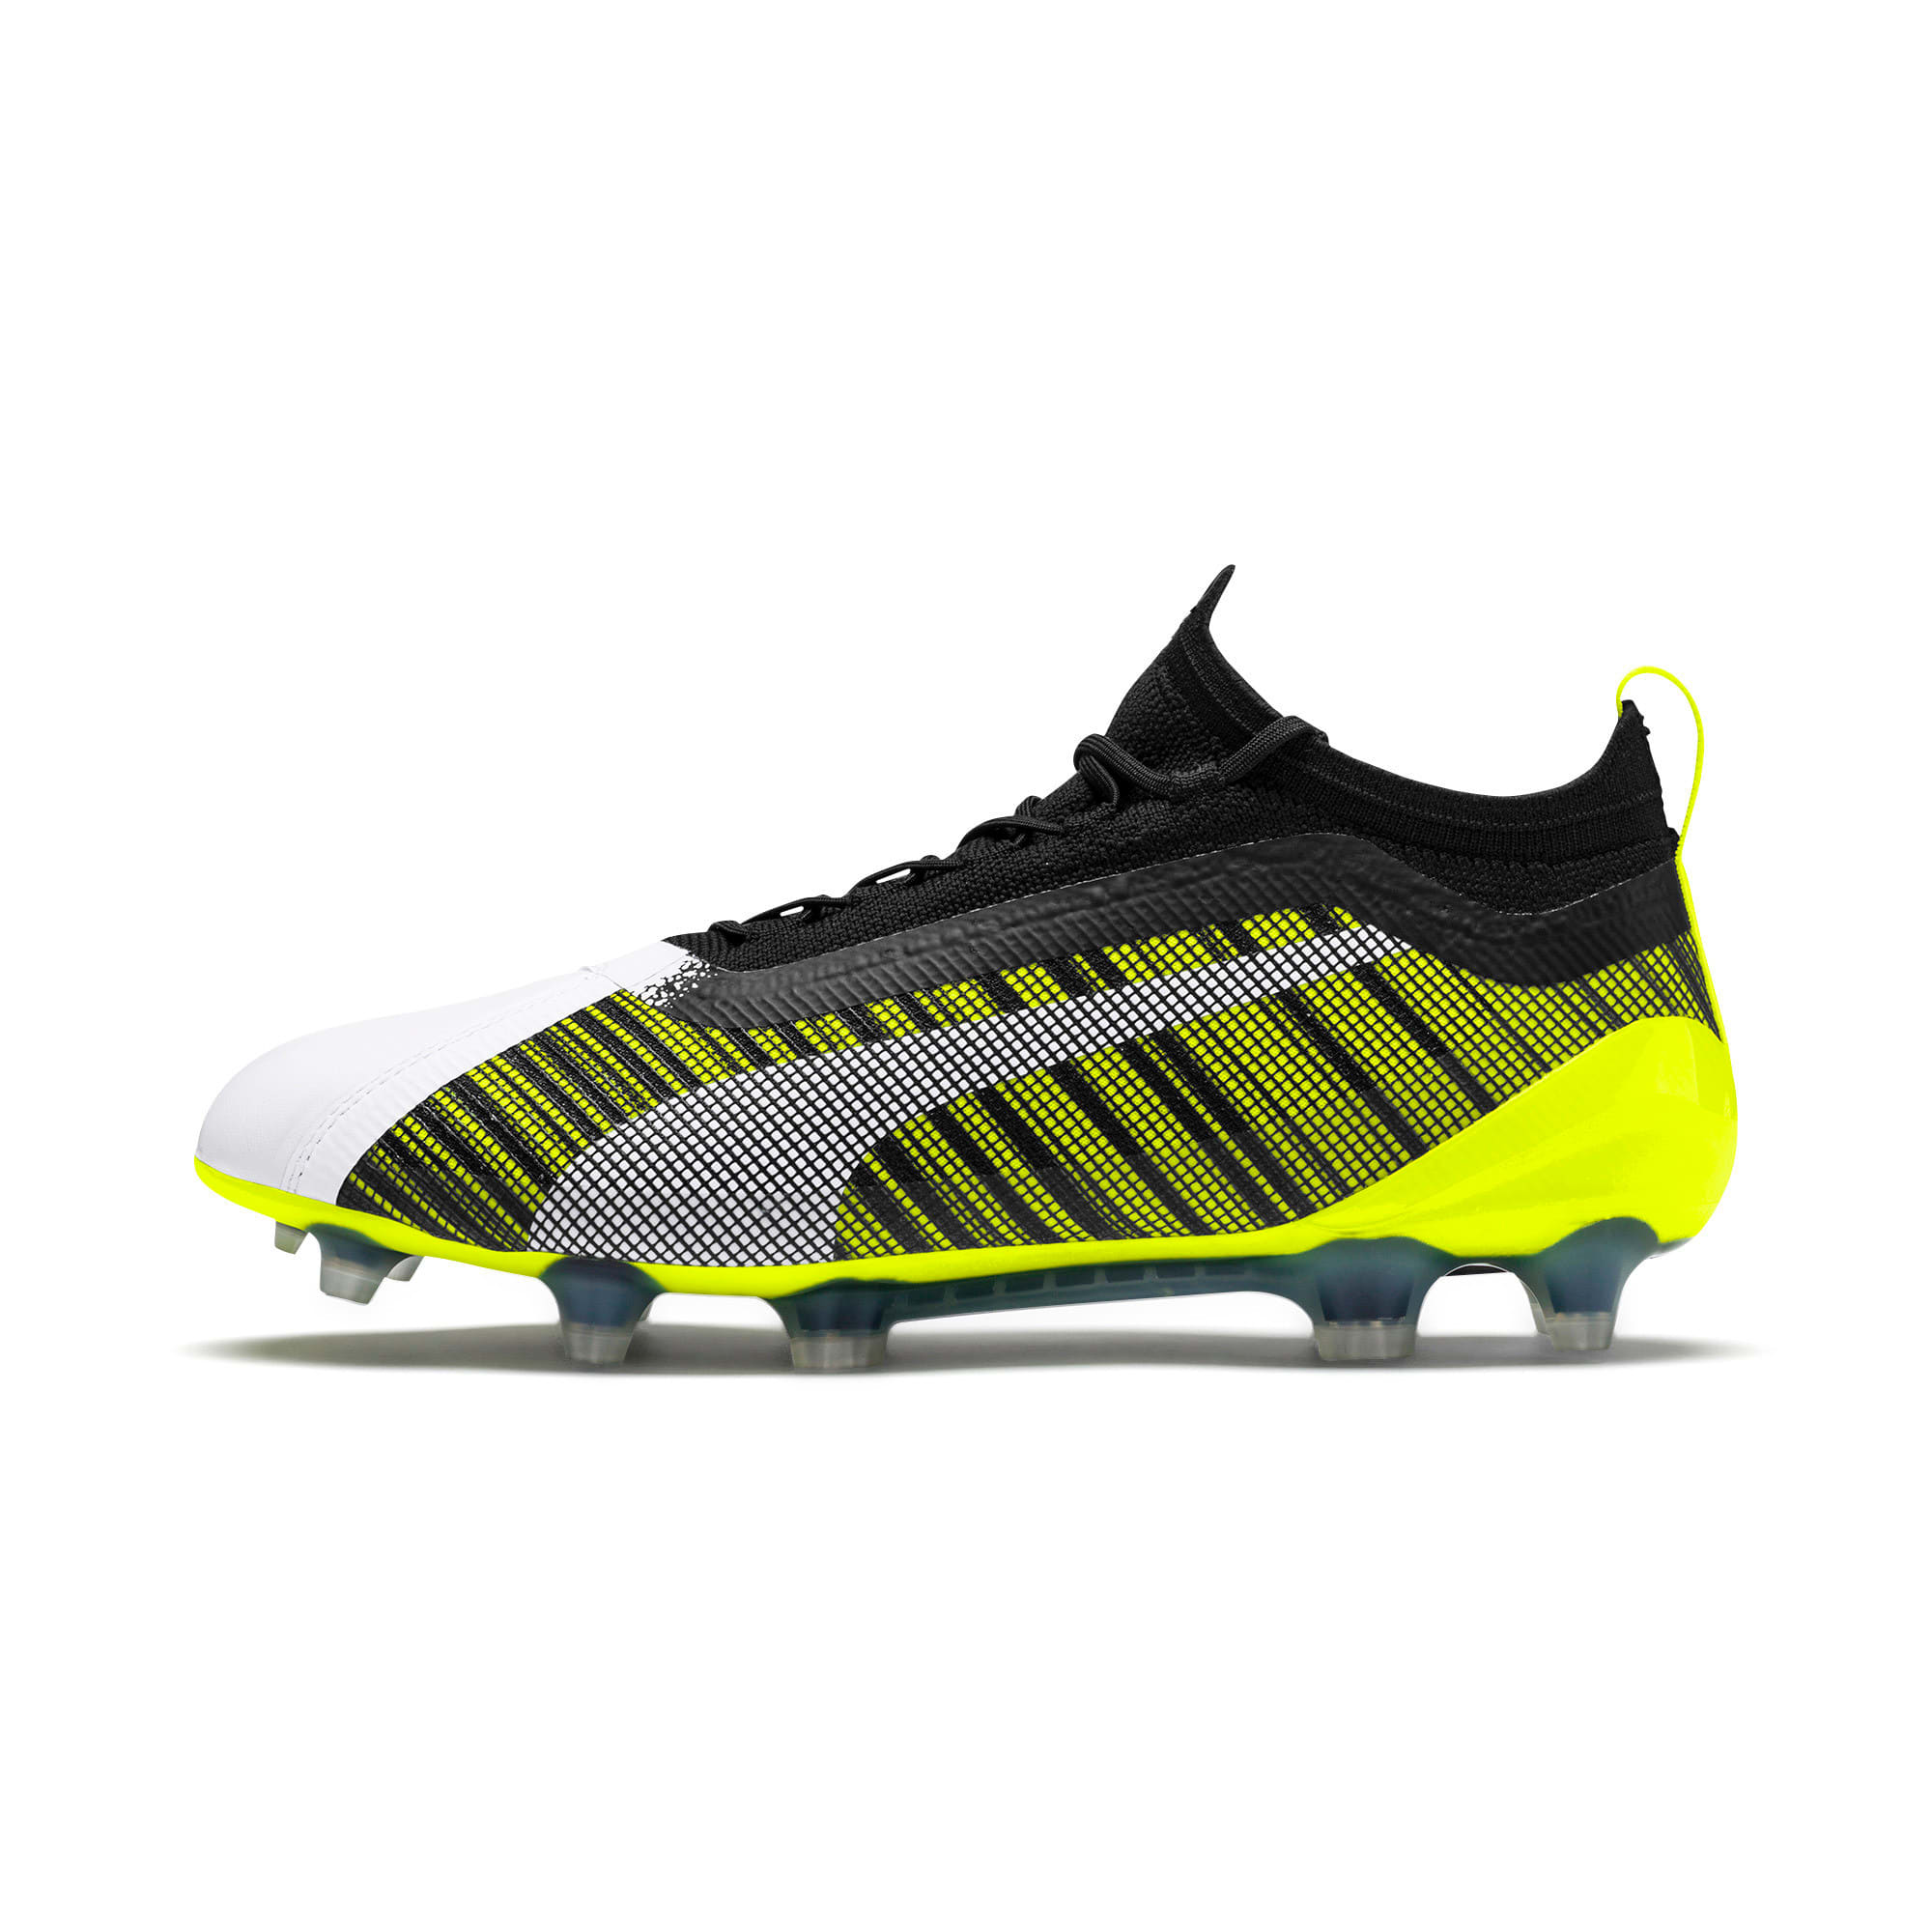 Thumbnail 1 of PUMA ONE 5.1 FG/AG Men's Soccer Cleats, White-Black-Yellow Alert, medium